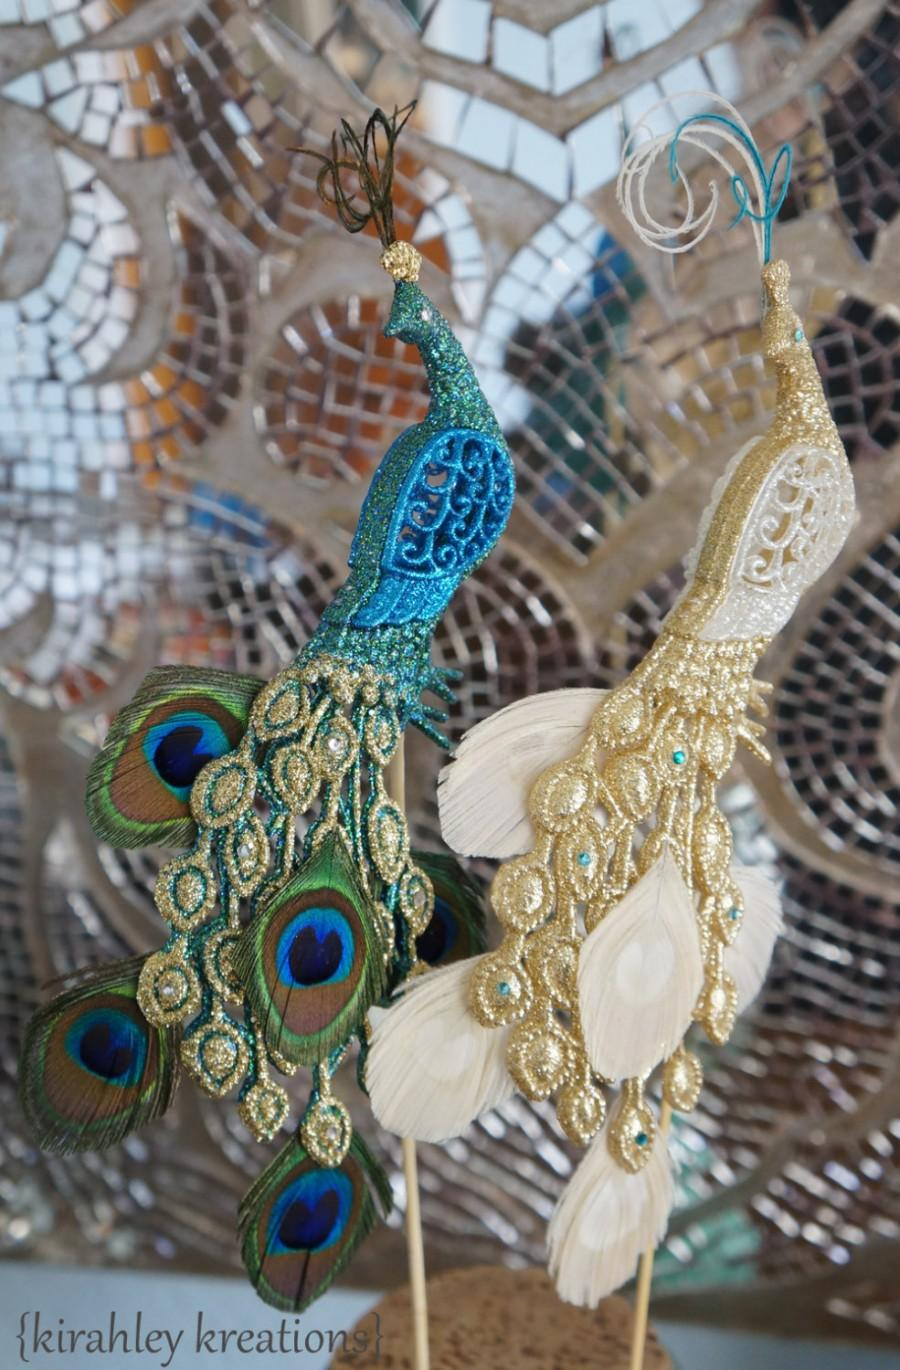 Свадьба - PEACOCK Wedding Cake Toppers Glittery Iridescent Green Teal White Gold Pair of Birds Feathers Herl Swarovski Crystal Rhinestone Customizable